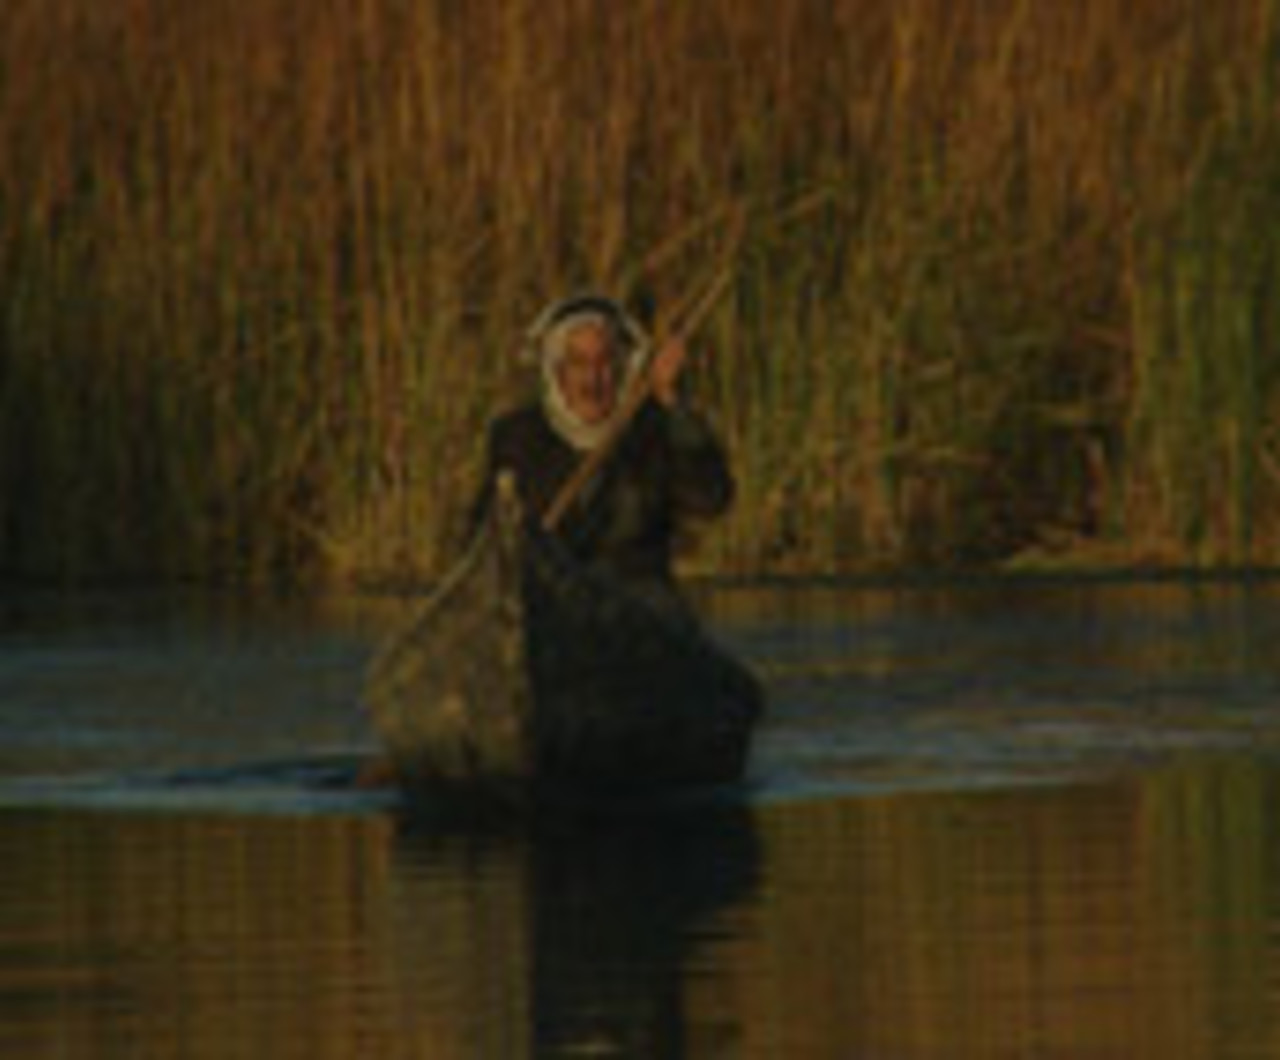 Zaman, the Man From the Reeds